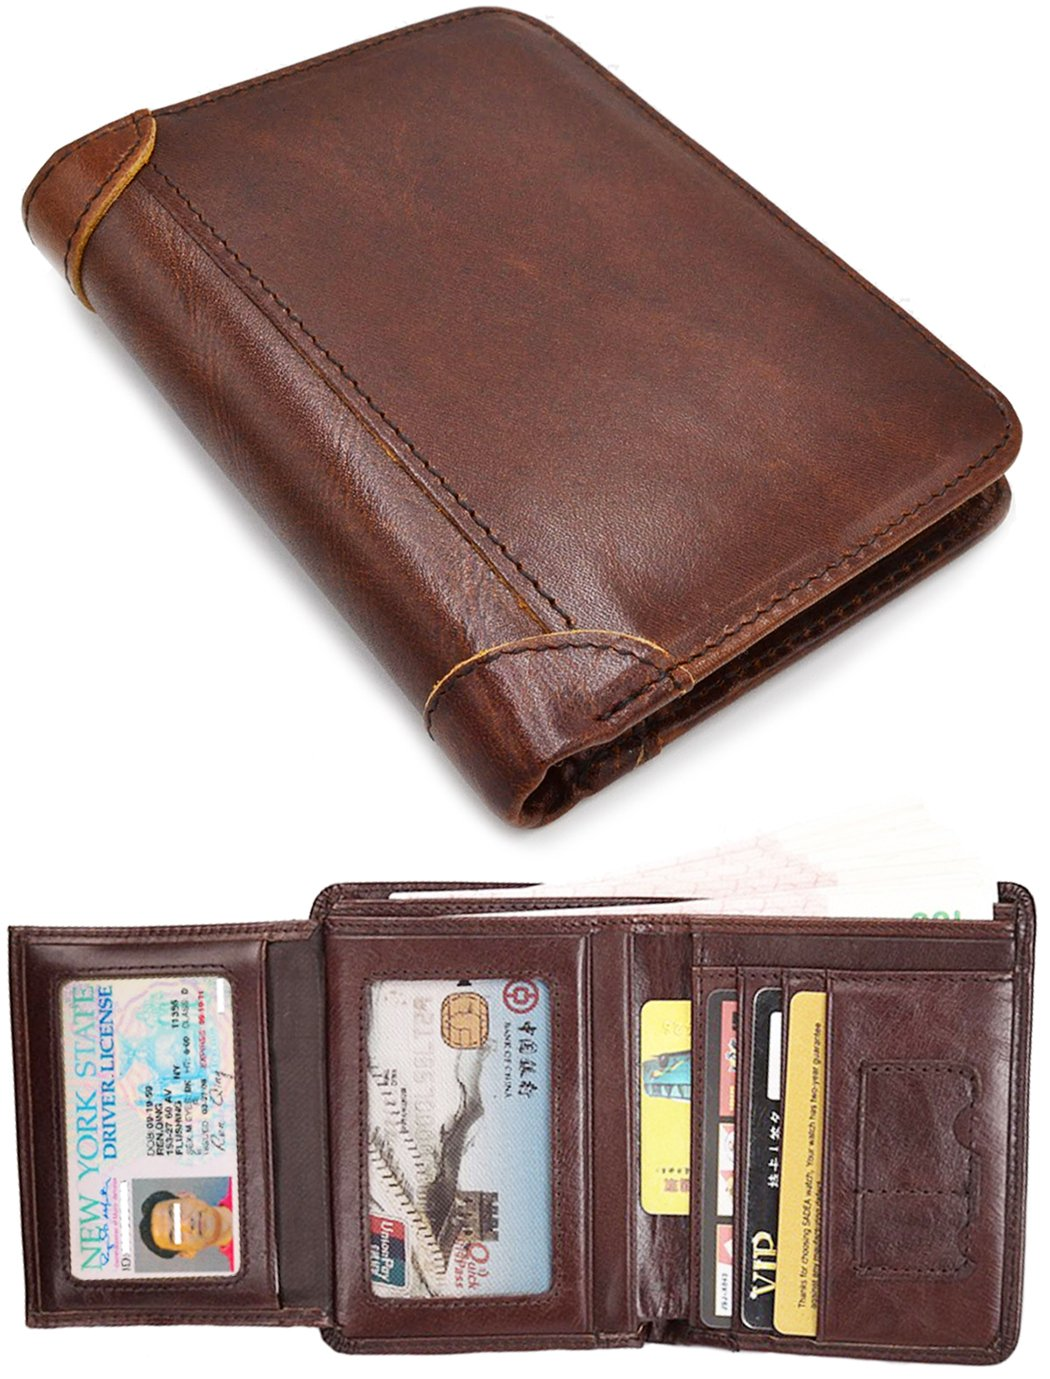 RFID Blocking Wallet Retro Cowhide Leather Short Bifold Wallet With 2 ID windows